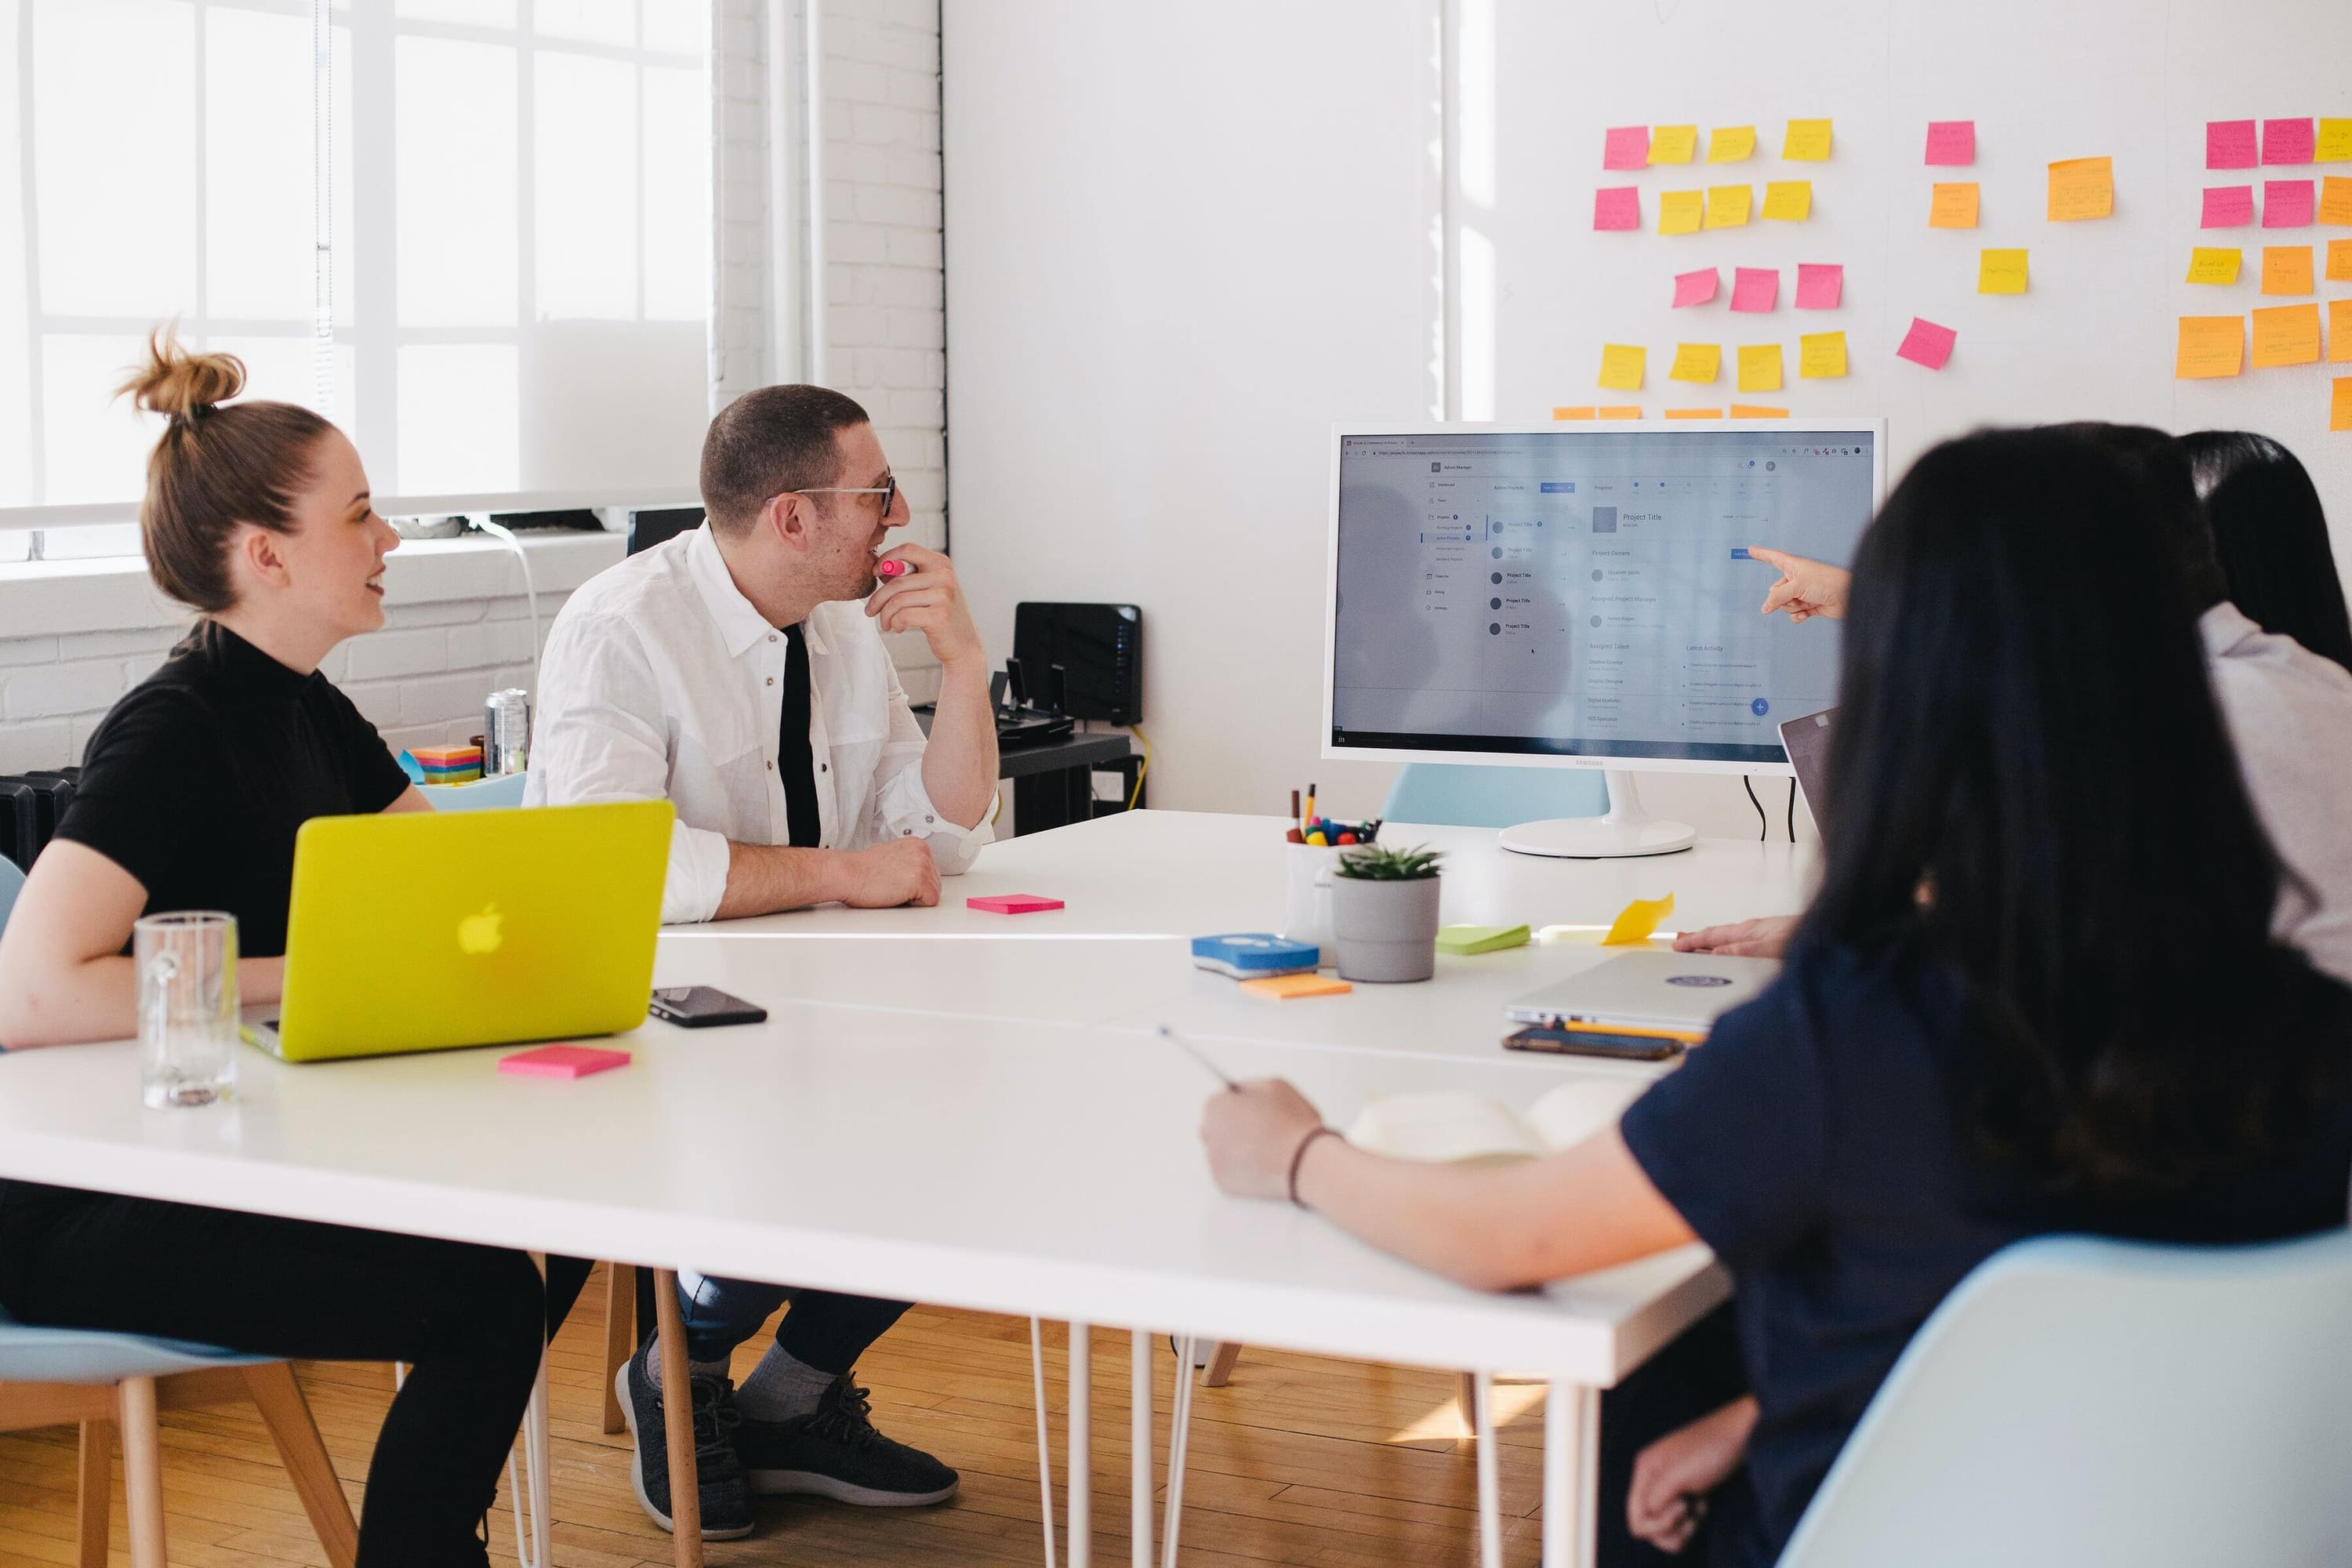 Employee Working Styles and Practices for the Future